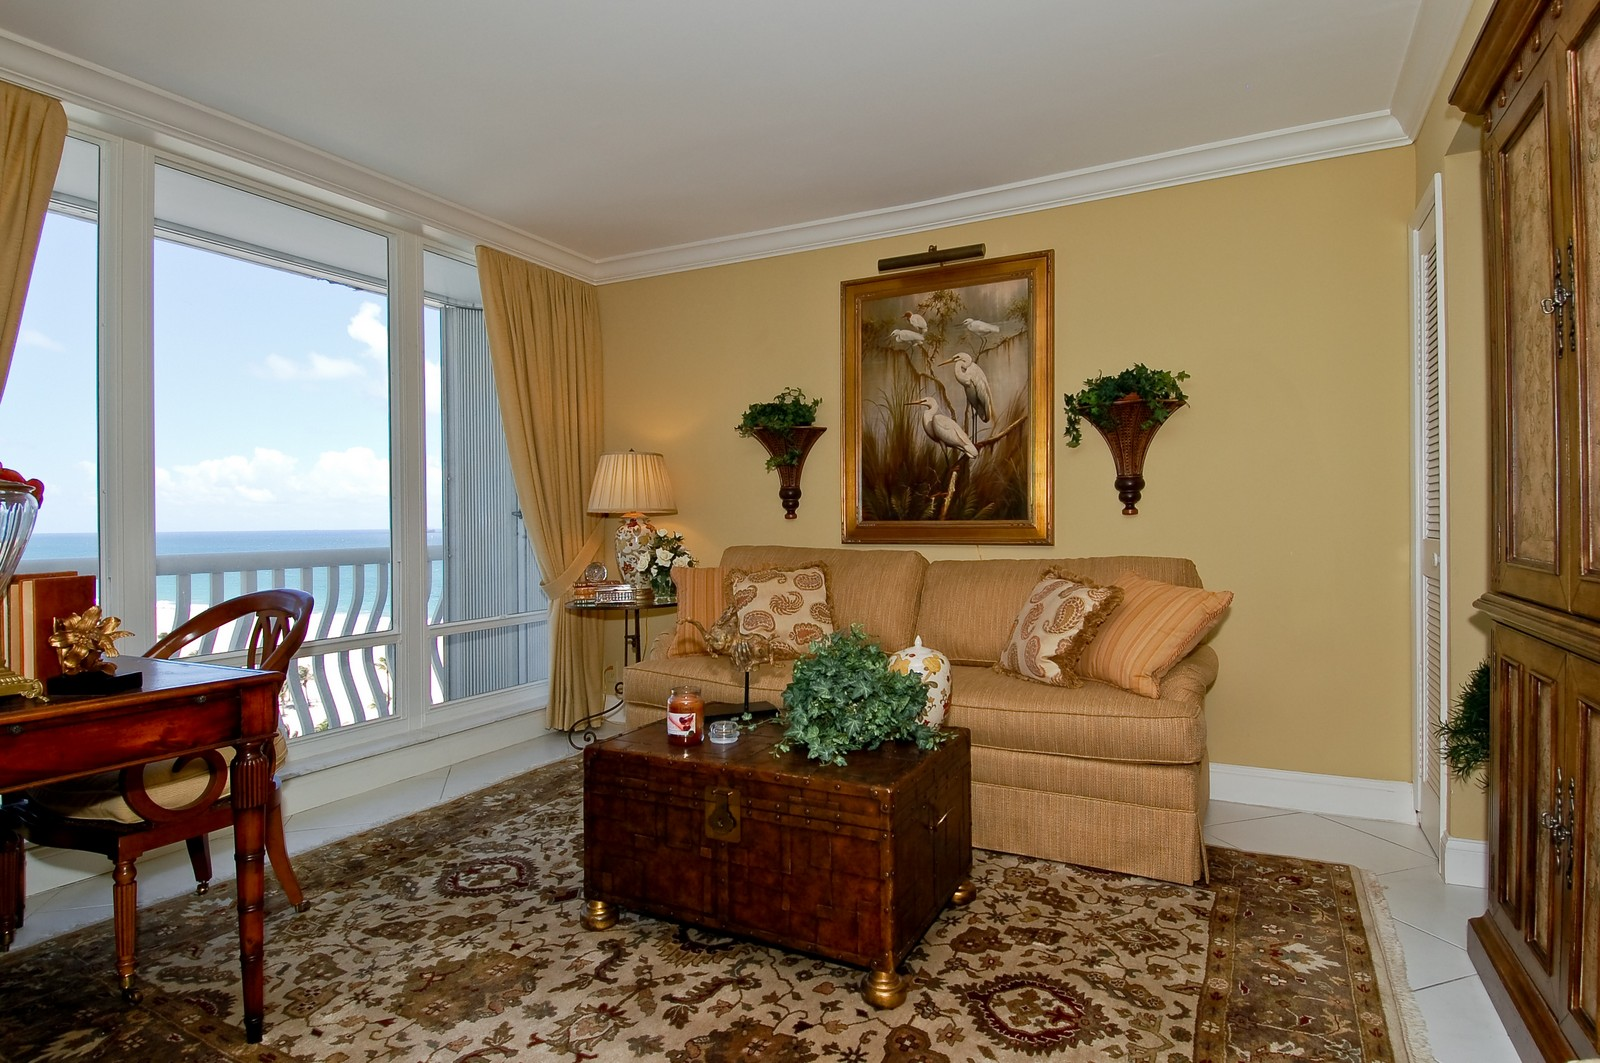 Real Estate Photography - 2200 S Ocean Ln, 1003, Fort Lauderdale, FL, 33316 - Location 1